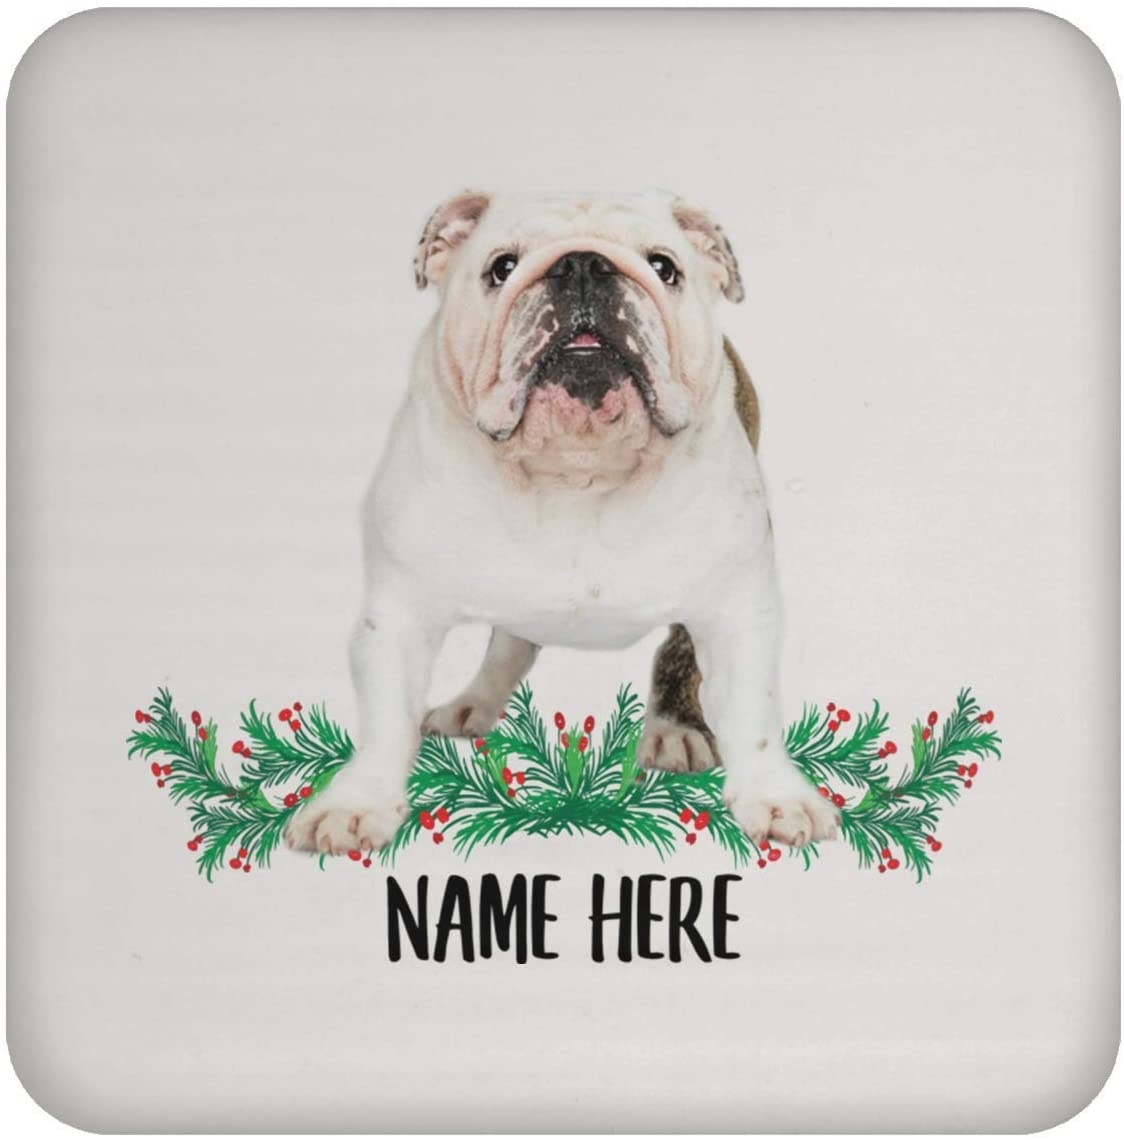 Funny English Bulldog White Brindle Personalized Name Gift for Mom Coasters for Drinks